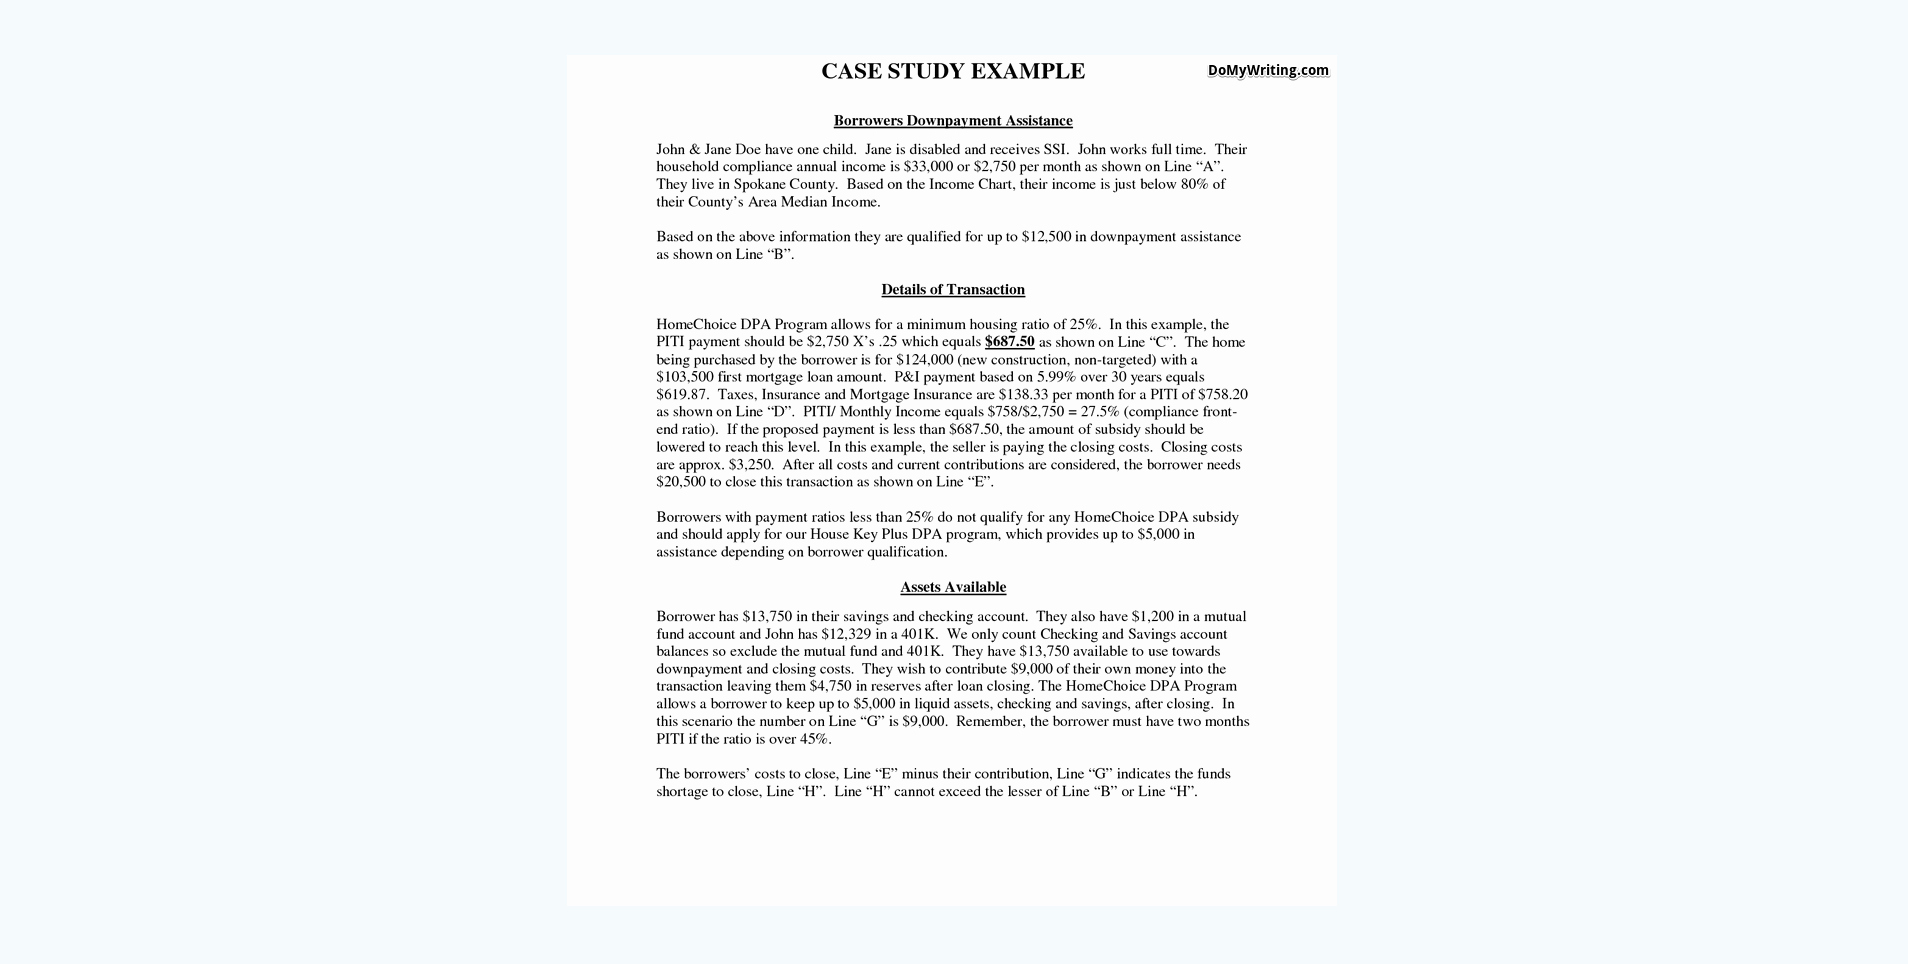 Examples Of Case Studies Fresh Case Study Definition and How to Write the Most Successful